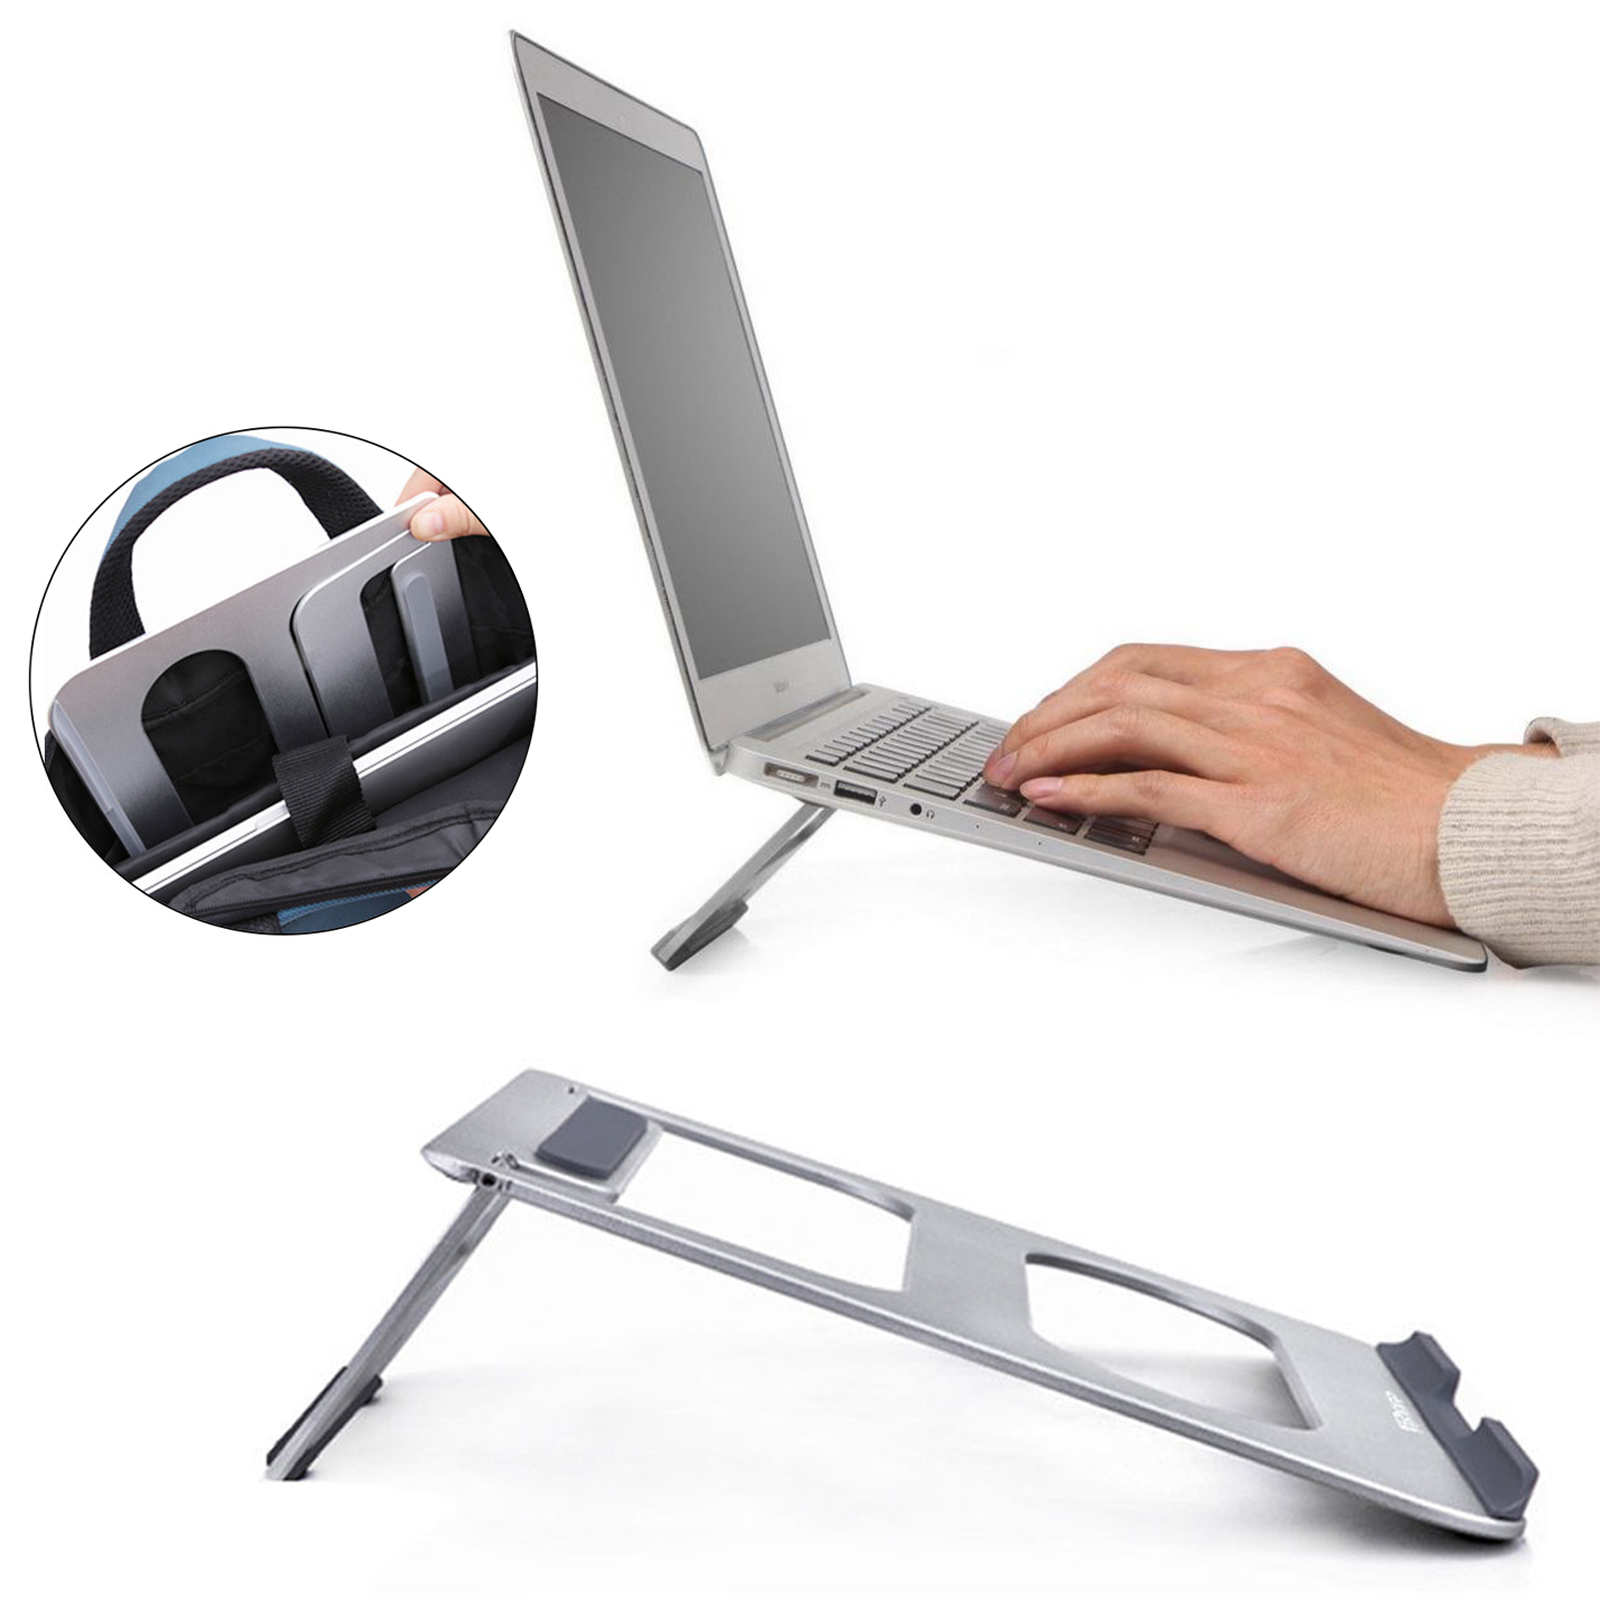 EEEKit 2in1 Office Kit for Laptop, Universal Cooling Desk Dock Stand with Photo Frame Mouse Pad for Macbook and 12 17inc